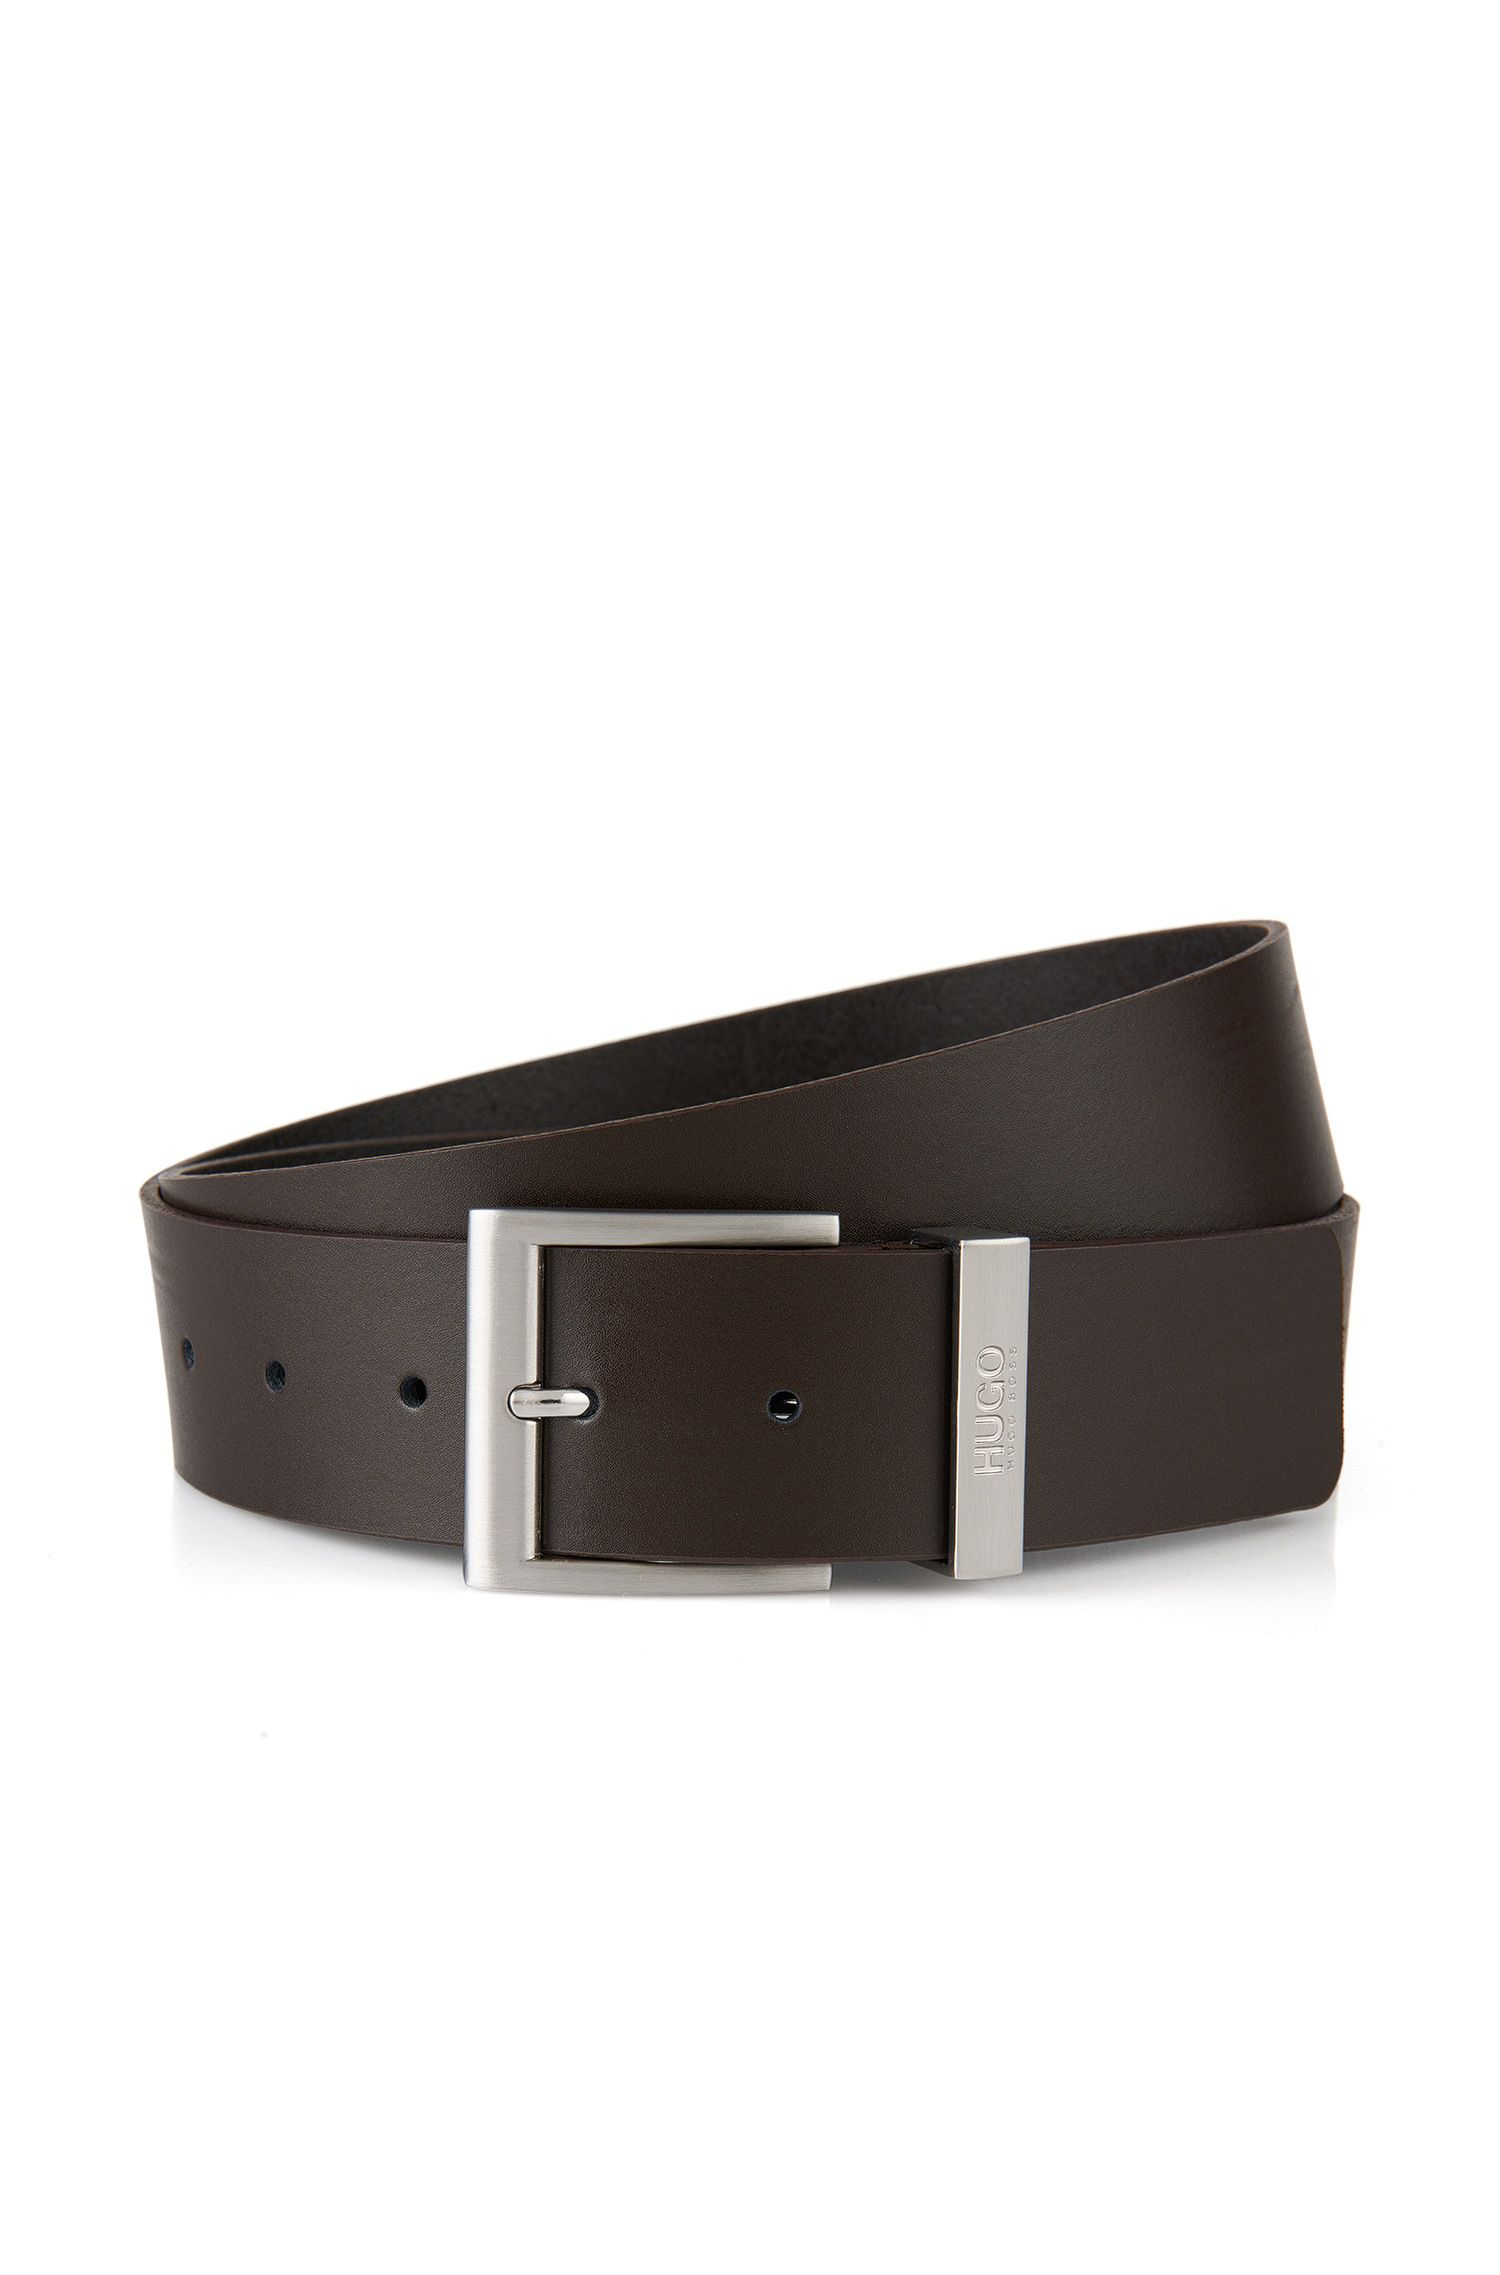 Leather belt with square pin buckle